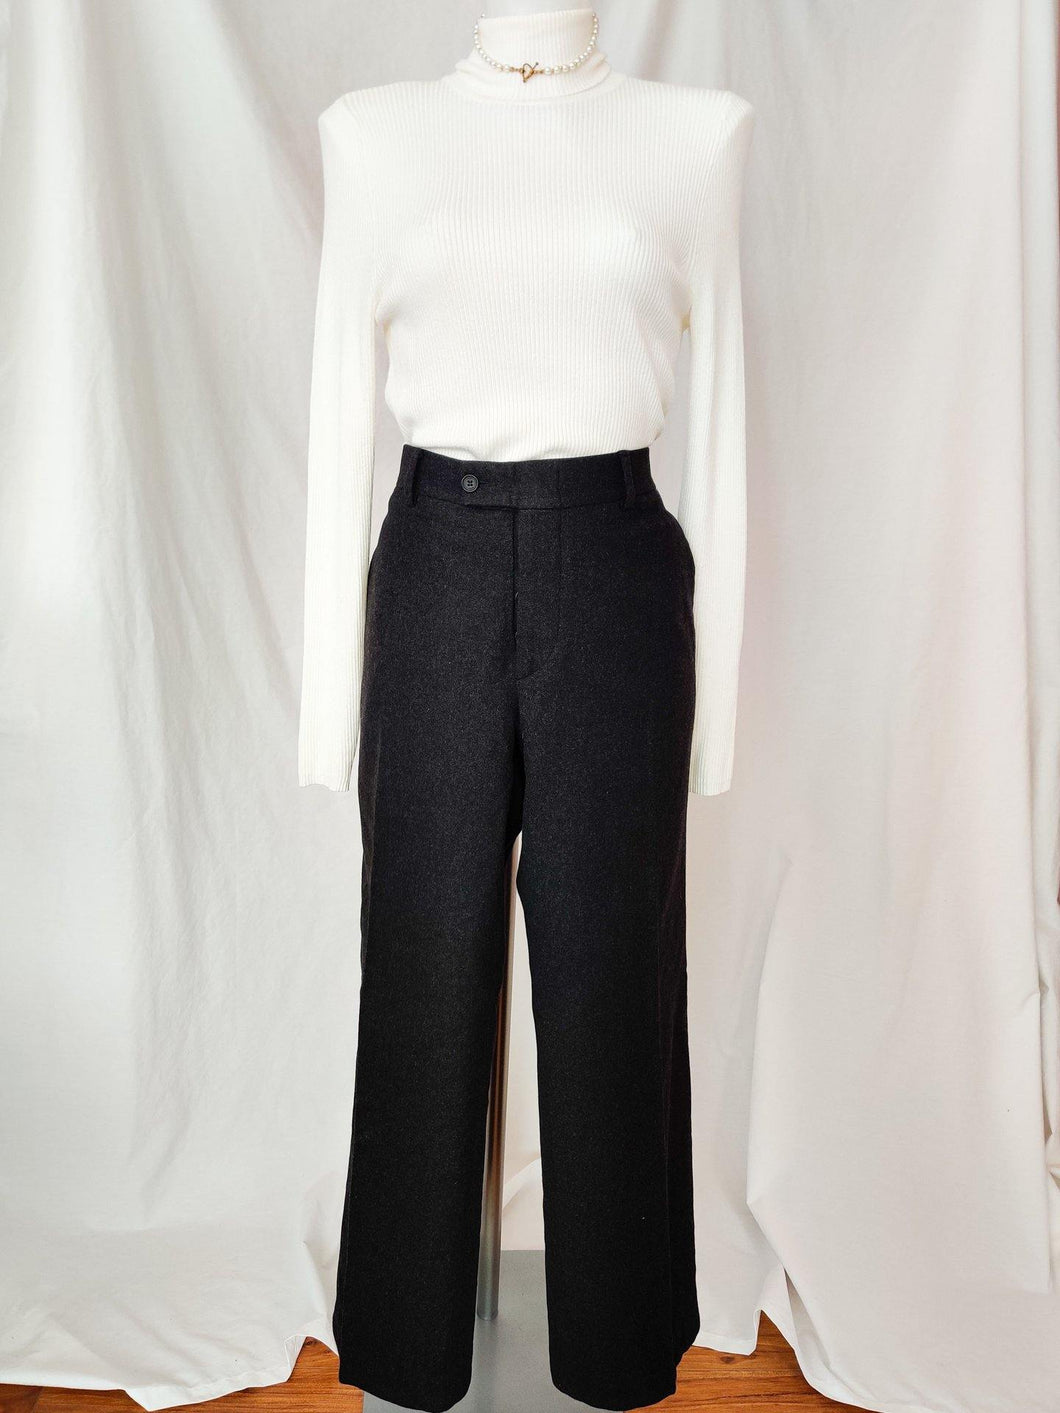 Vintage Gucci high rise wool trousers